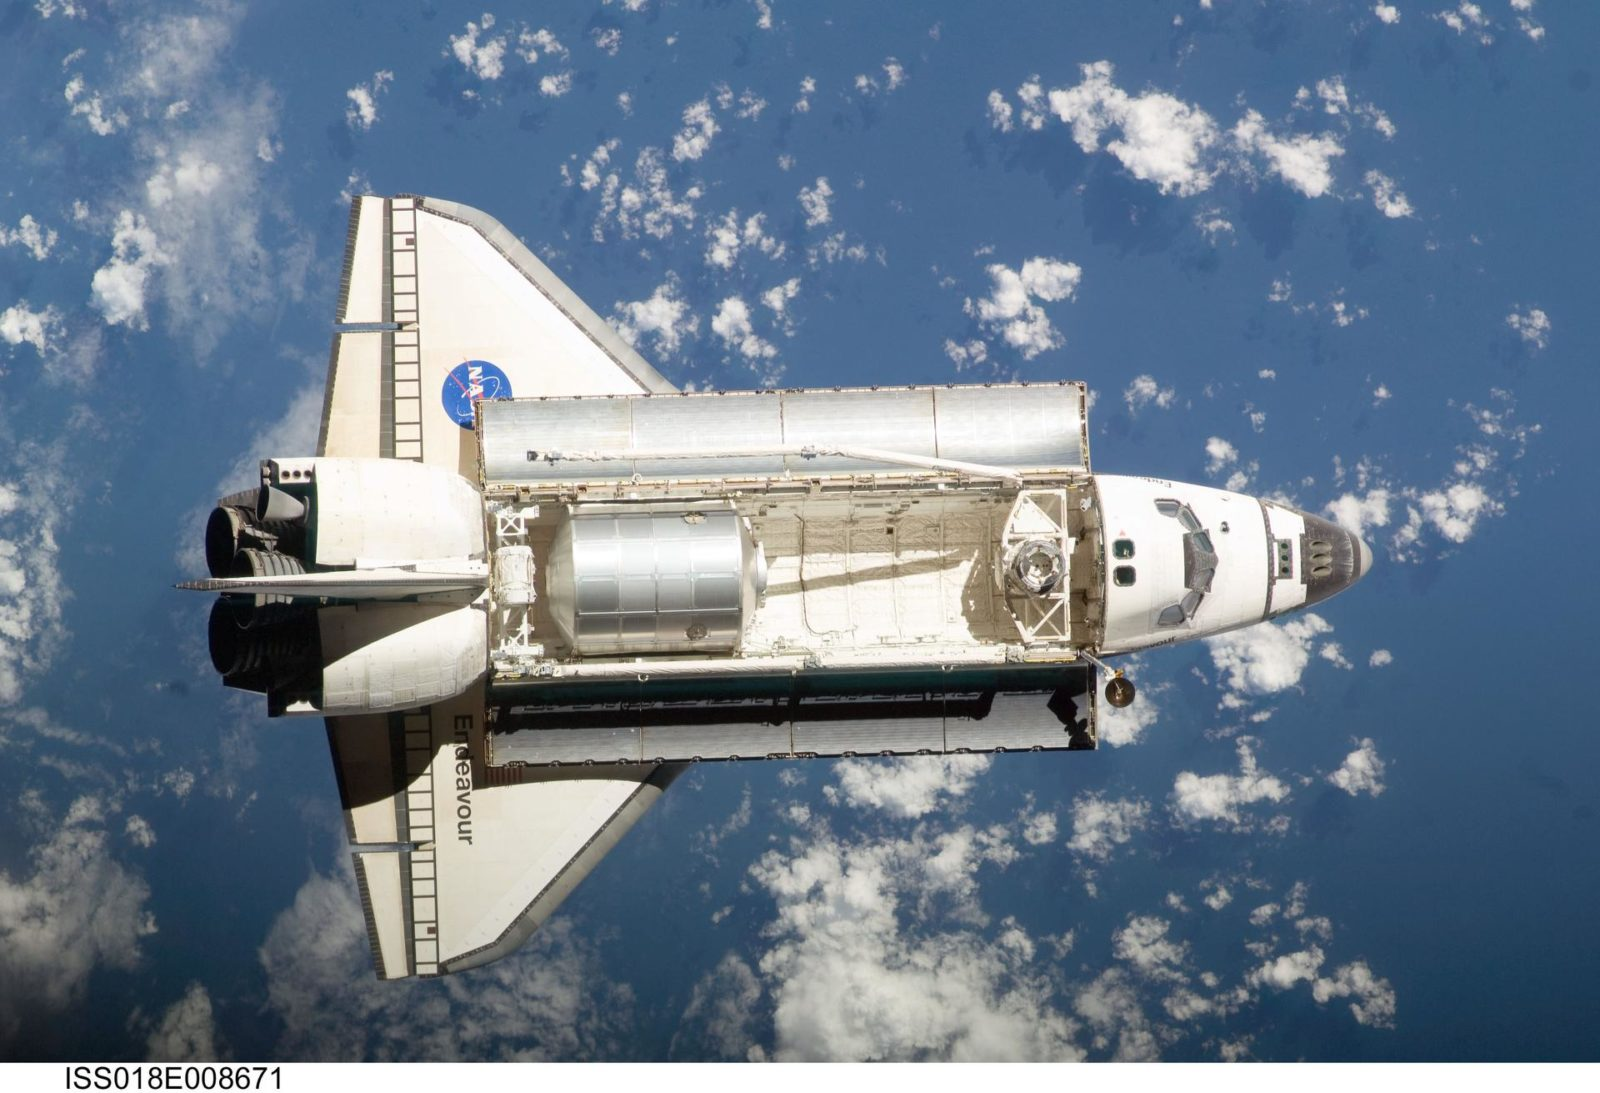 ISS Expedition 18 STS-126 Approach OPS